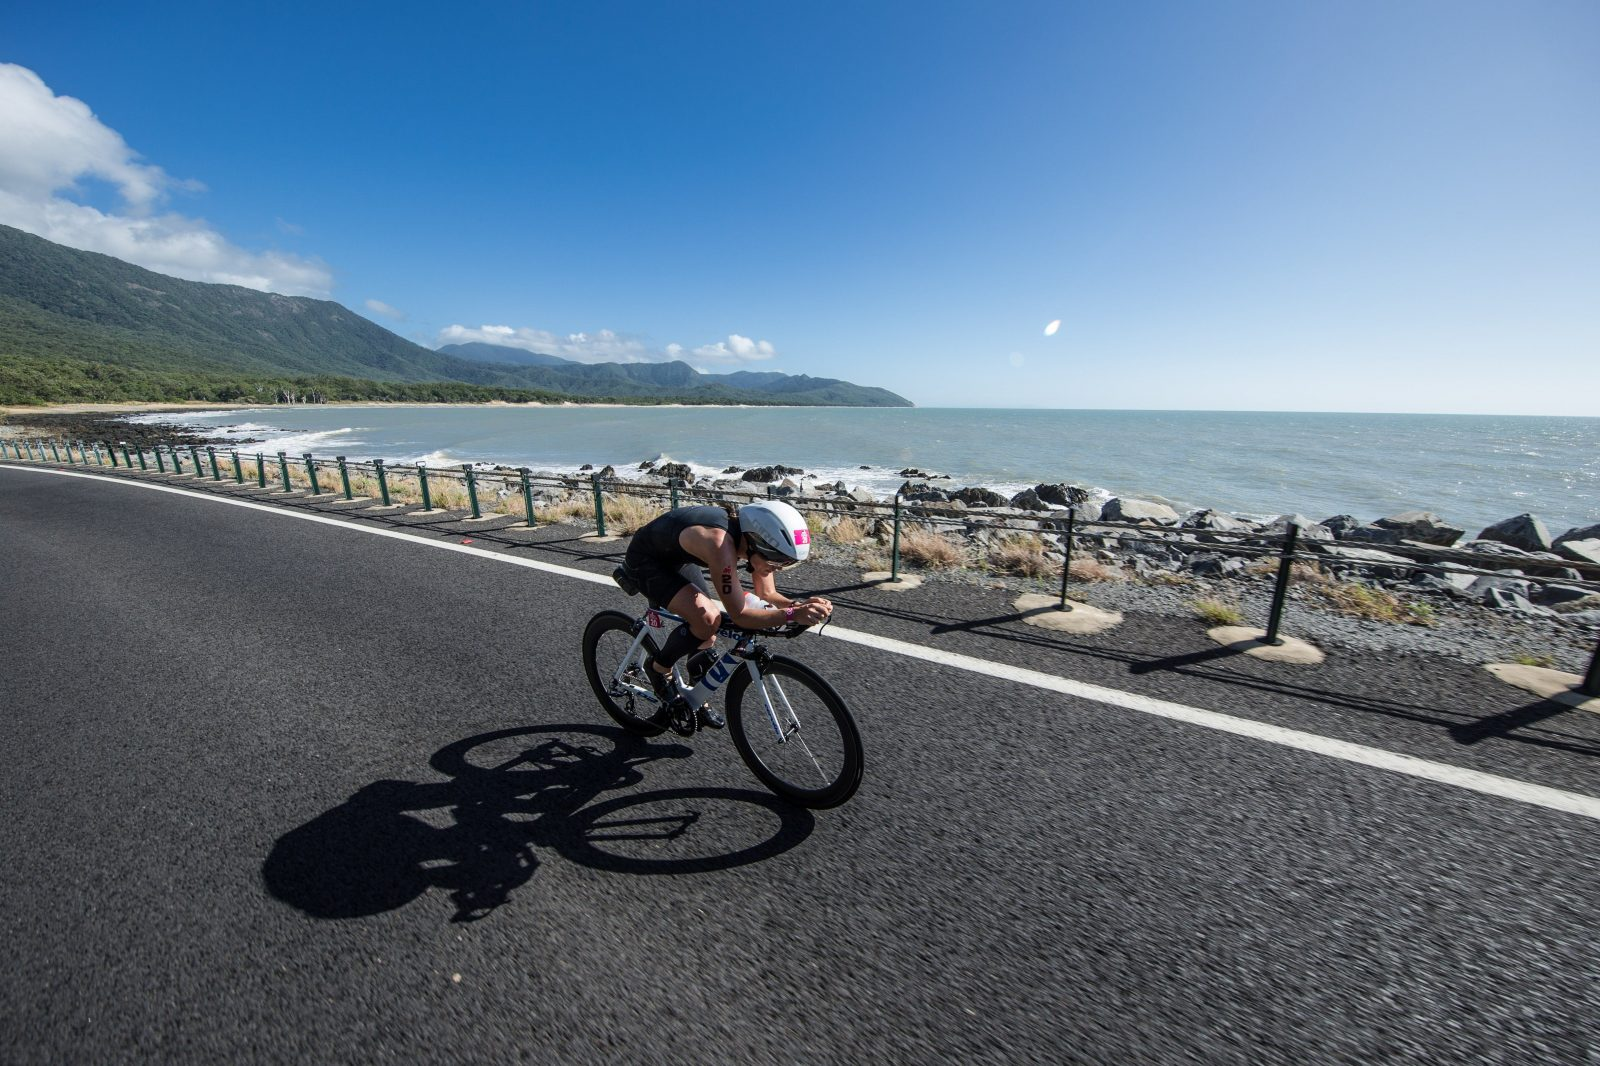 Bike course in Cairns